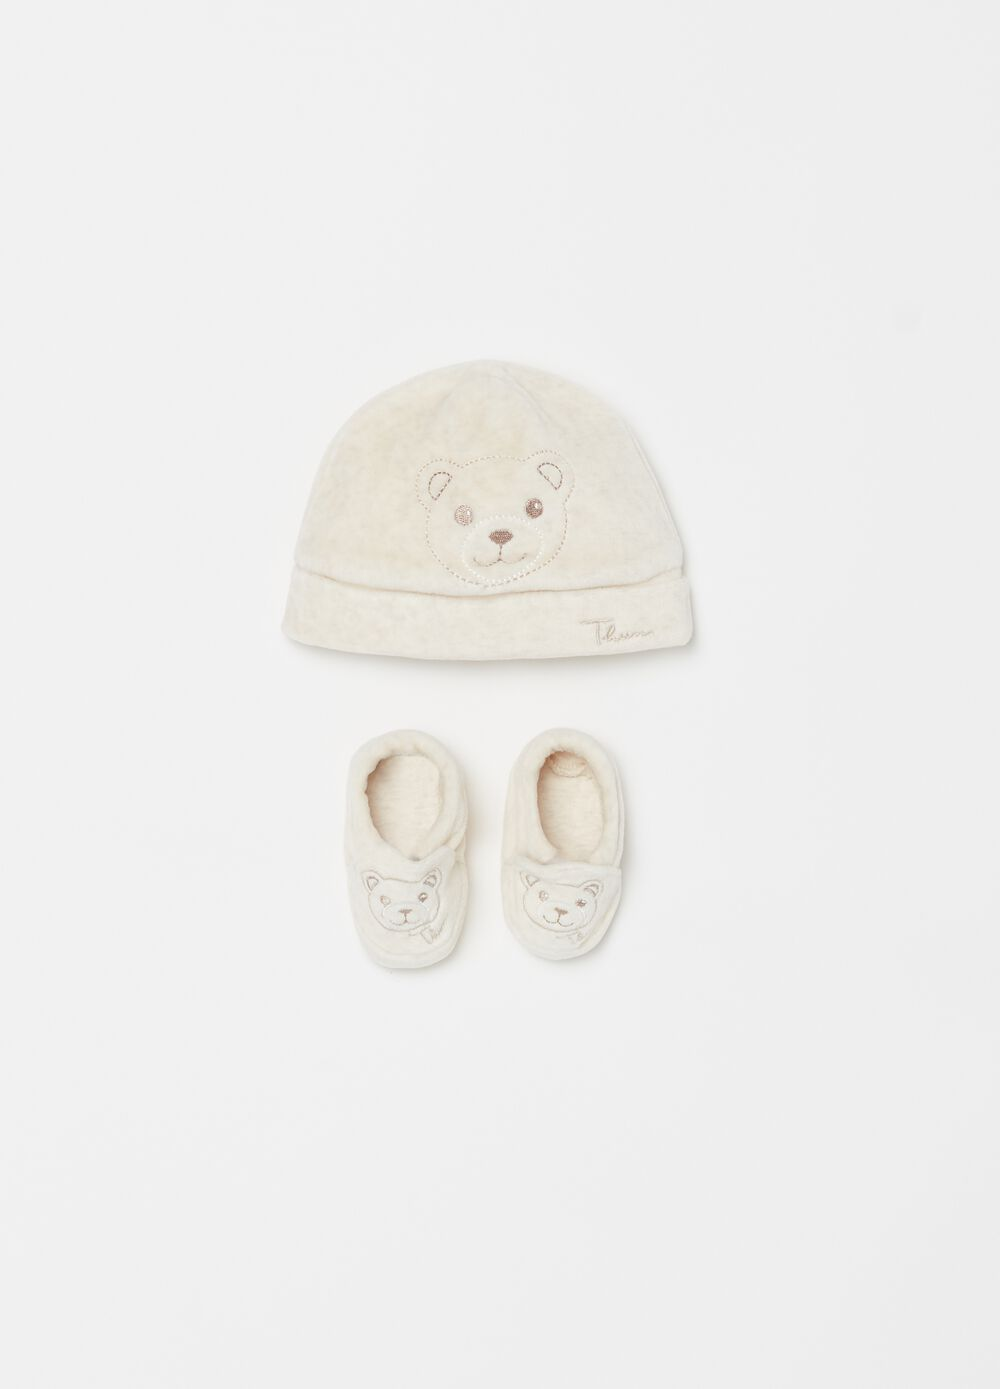 THUN Teddy hat and shoes set